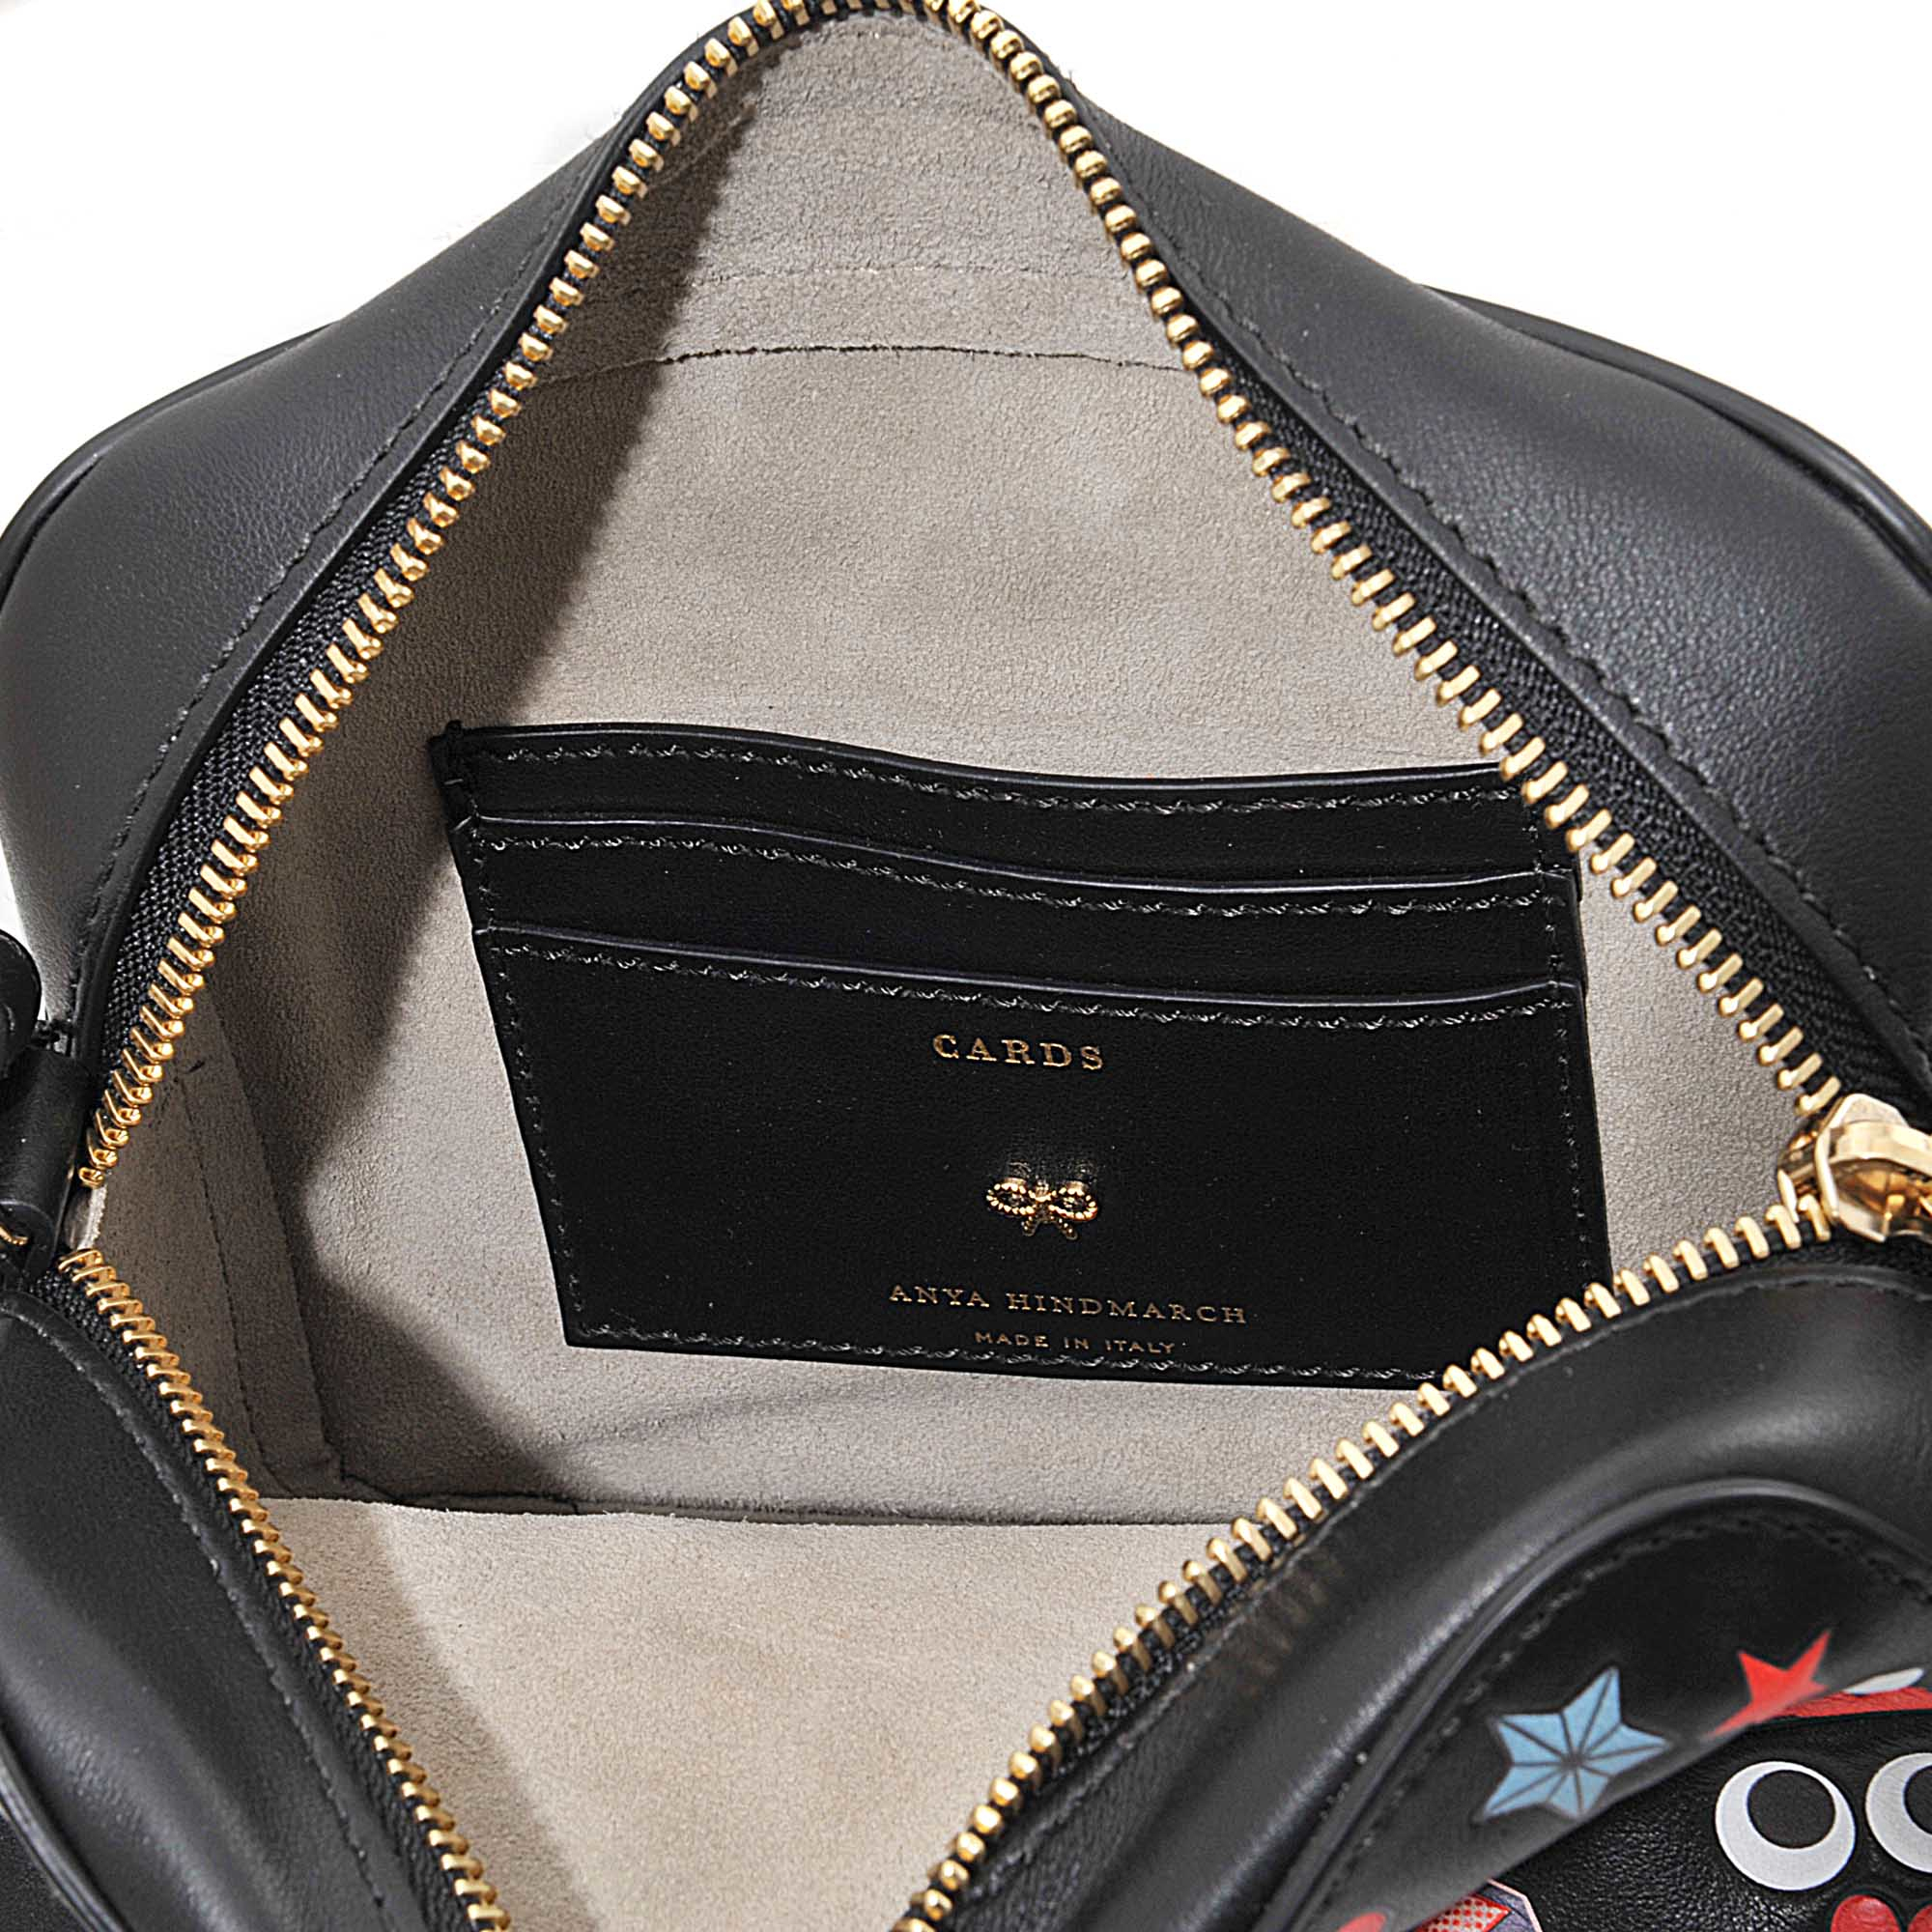 Anya Hindmarch Crossbody All Over Wink Stickers Bag